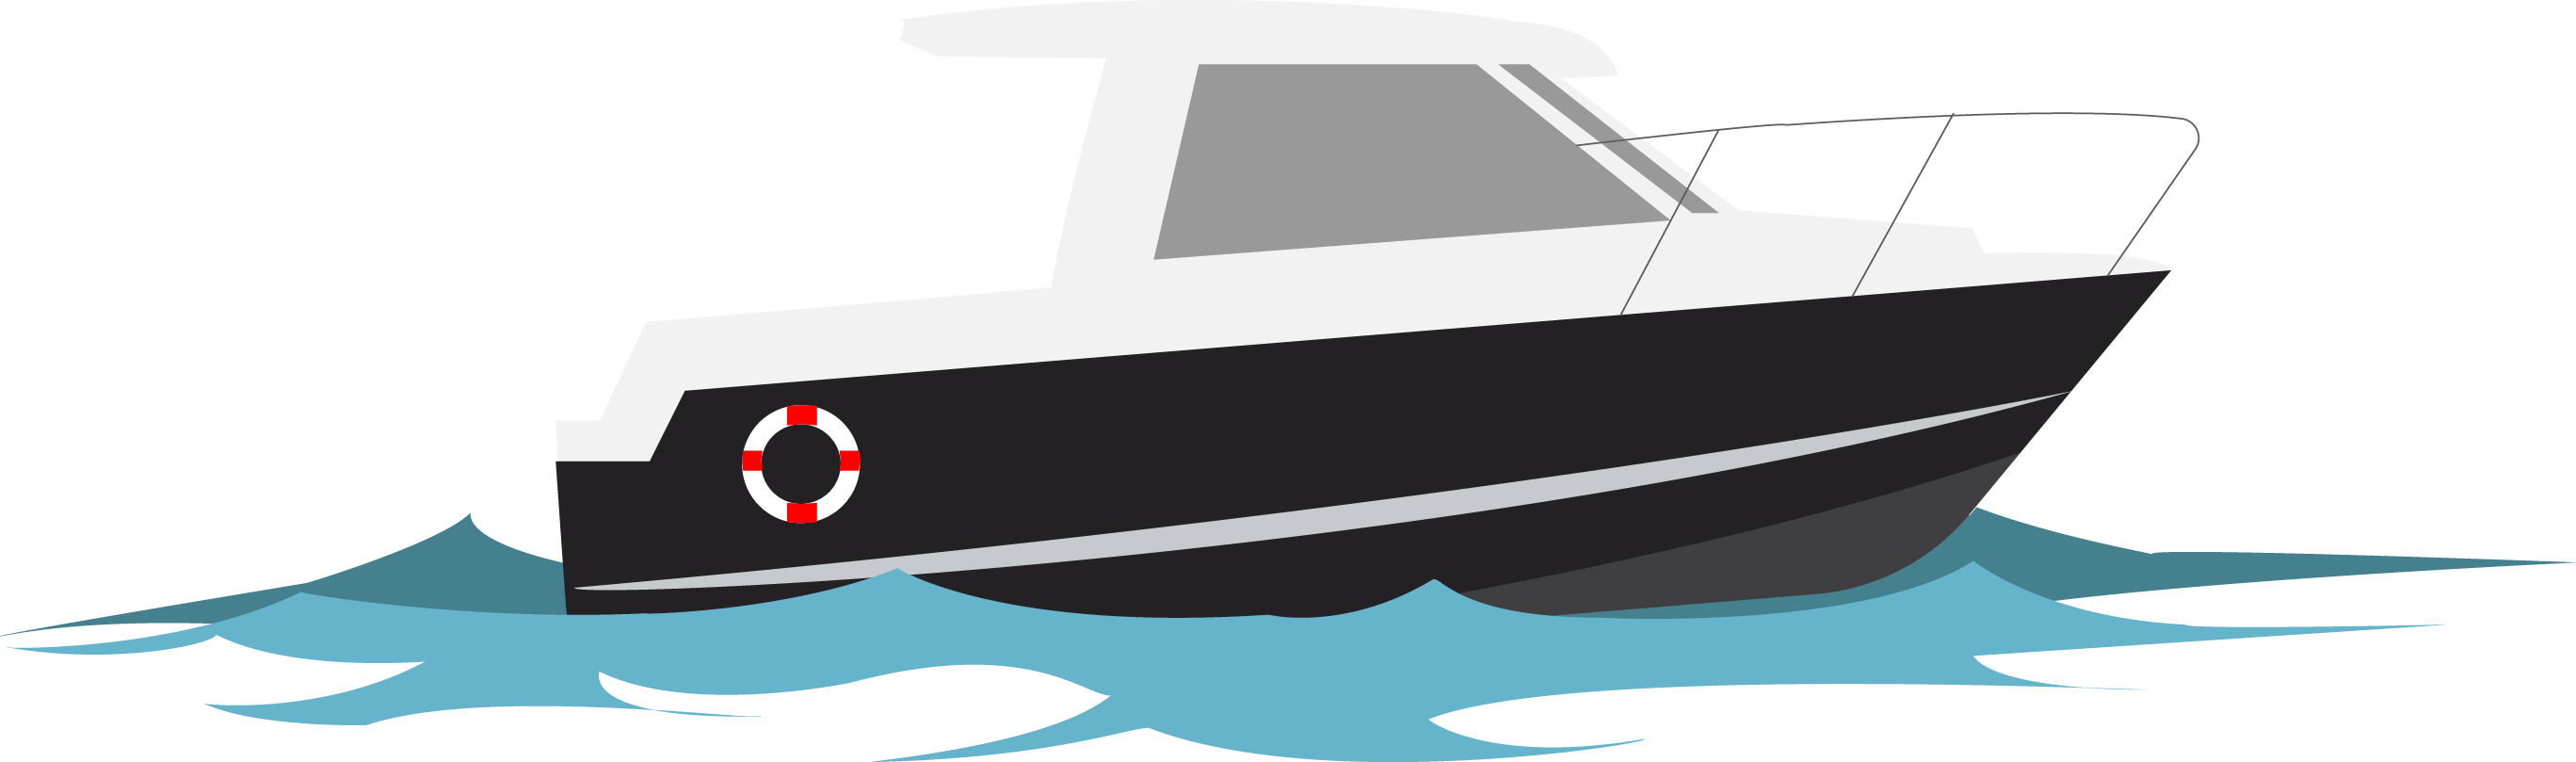 Cartoon boat png. Images in collection page